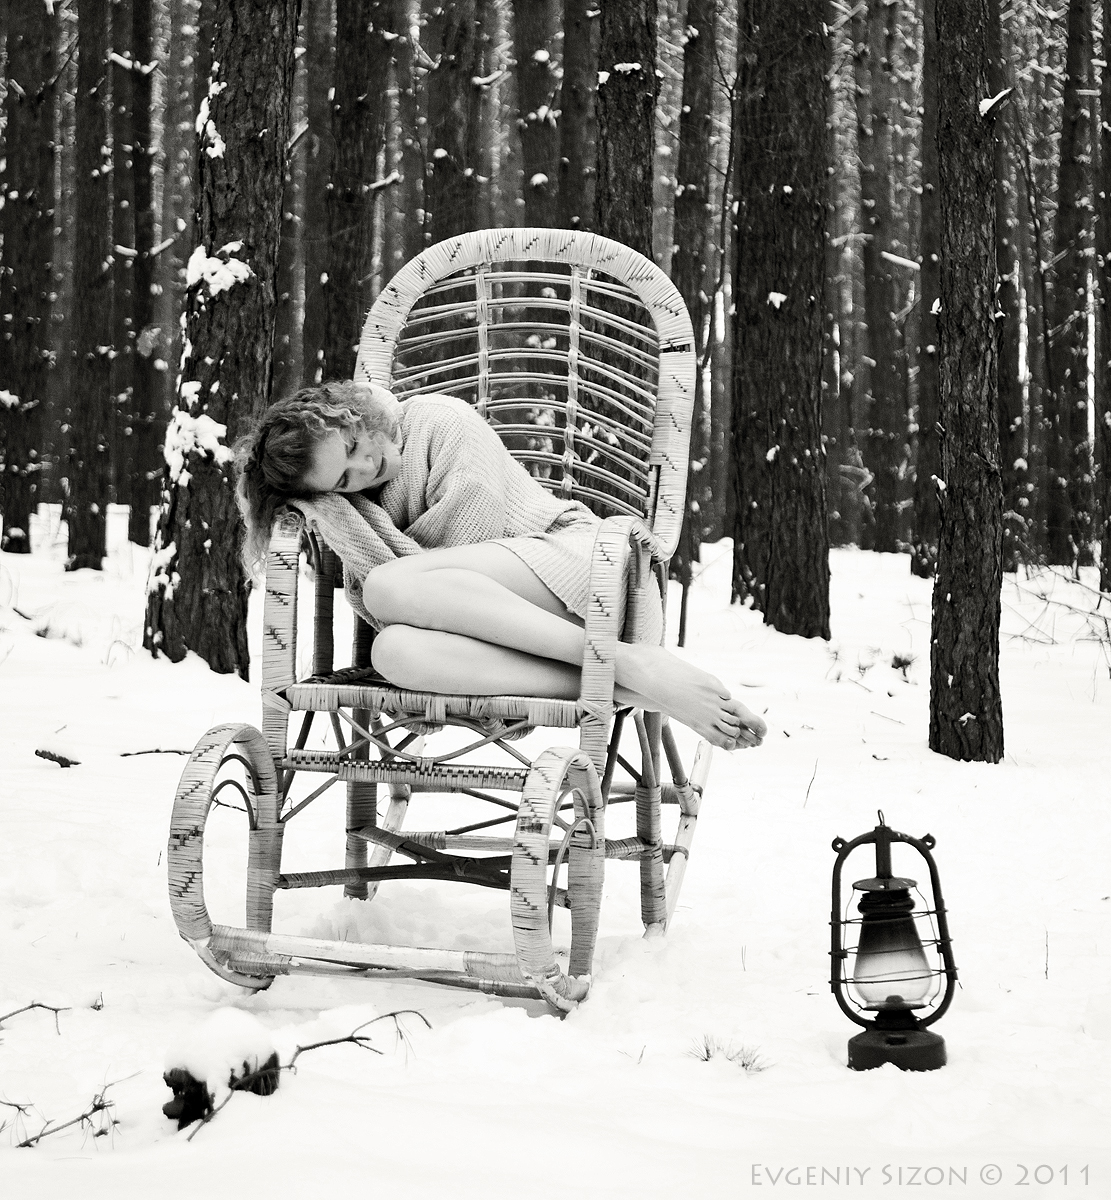 Zhesin Evgeniy Sizon, Winter Sleep, 2. Januar 2011